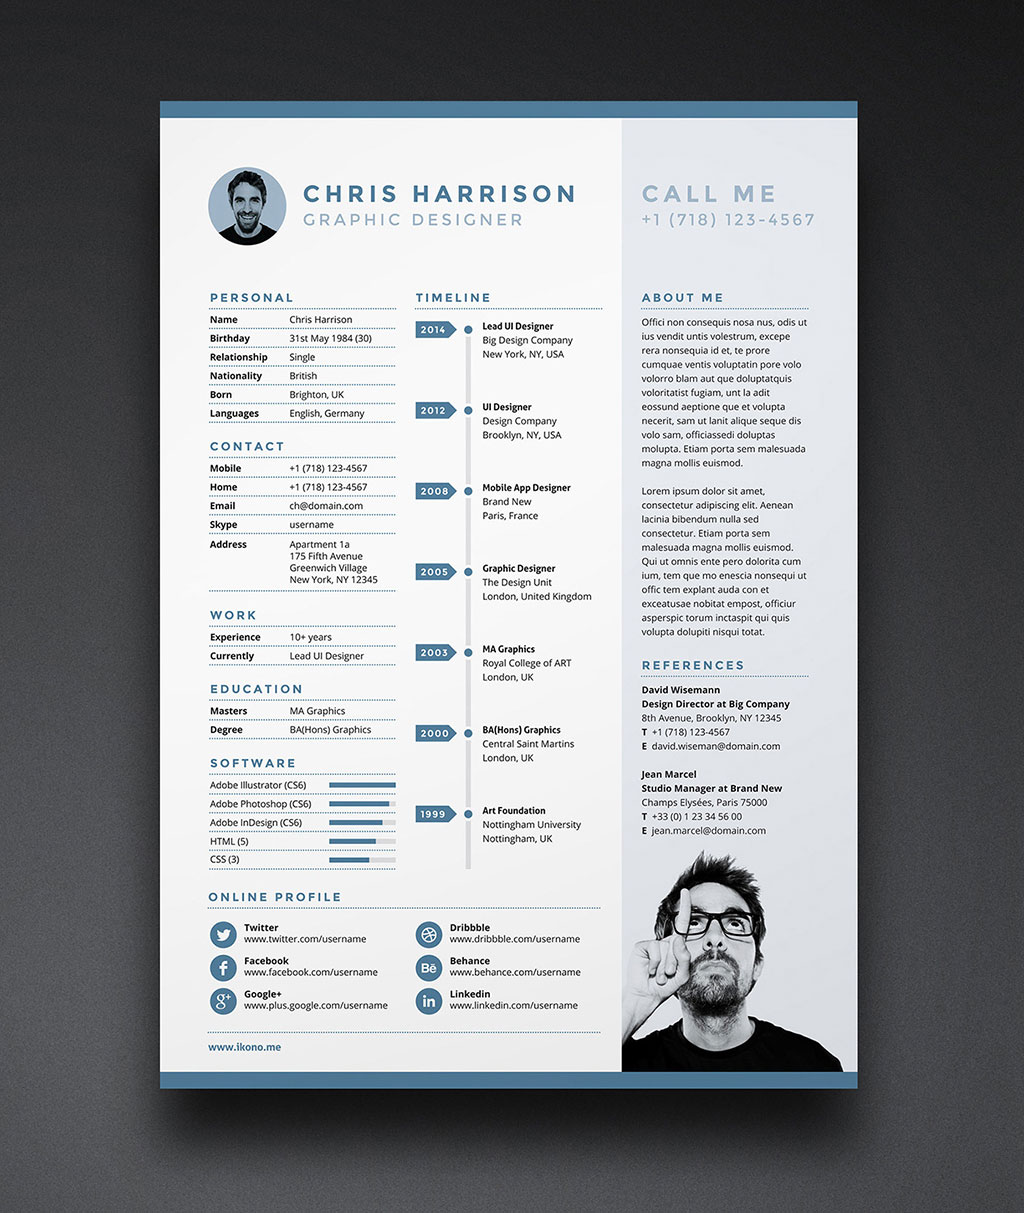 Free Resume Word Template Free Resume Cv Template In Indd Photoshop Psd Word Docx Good